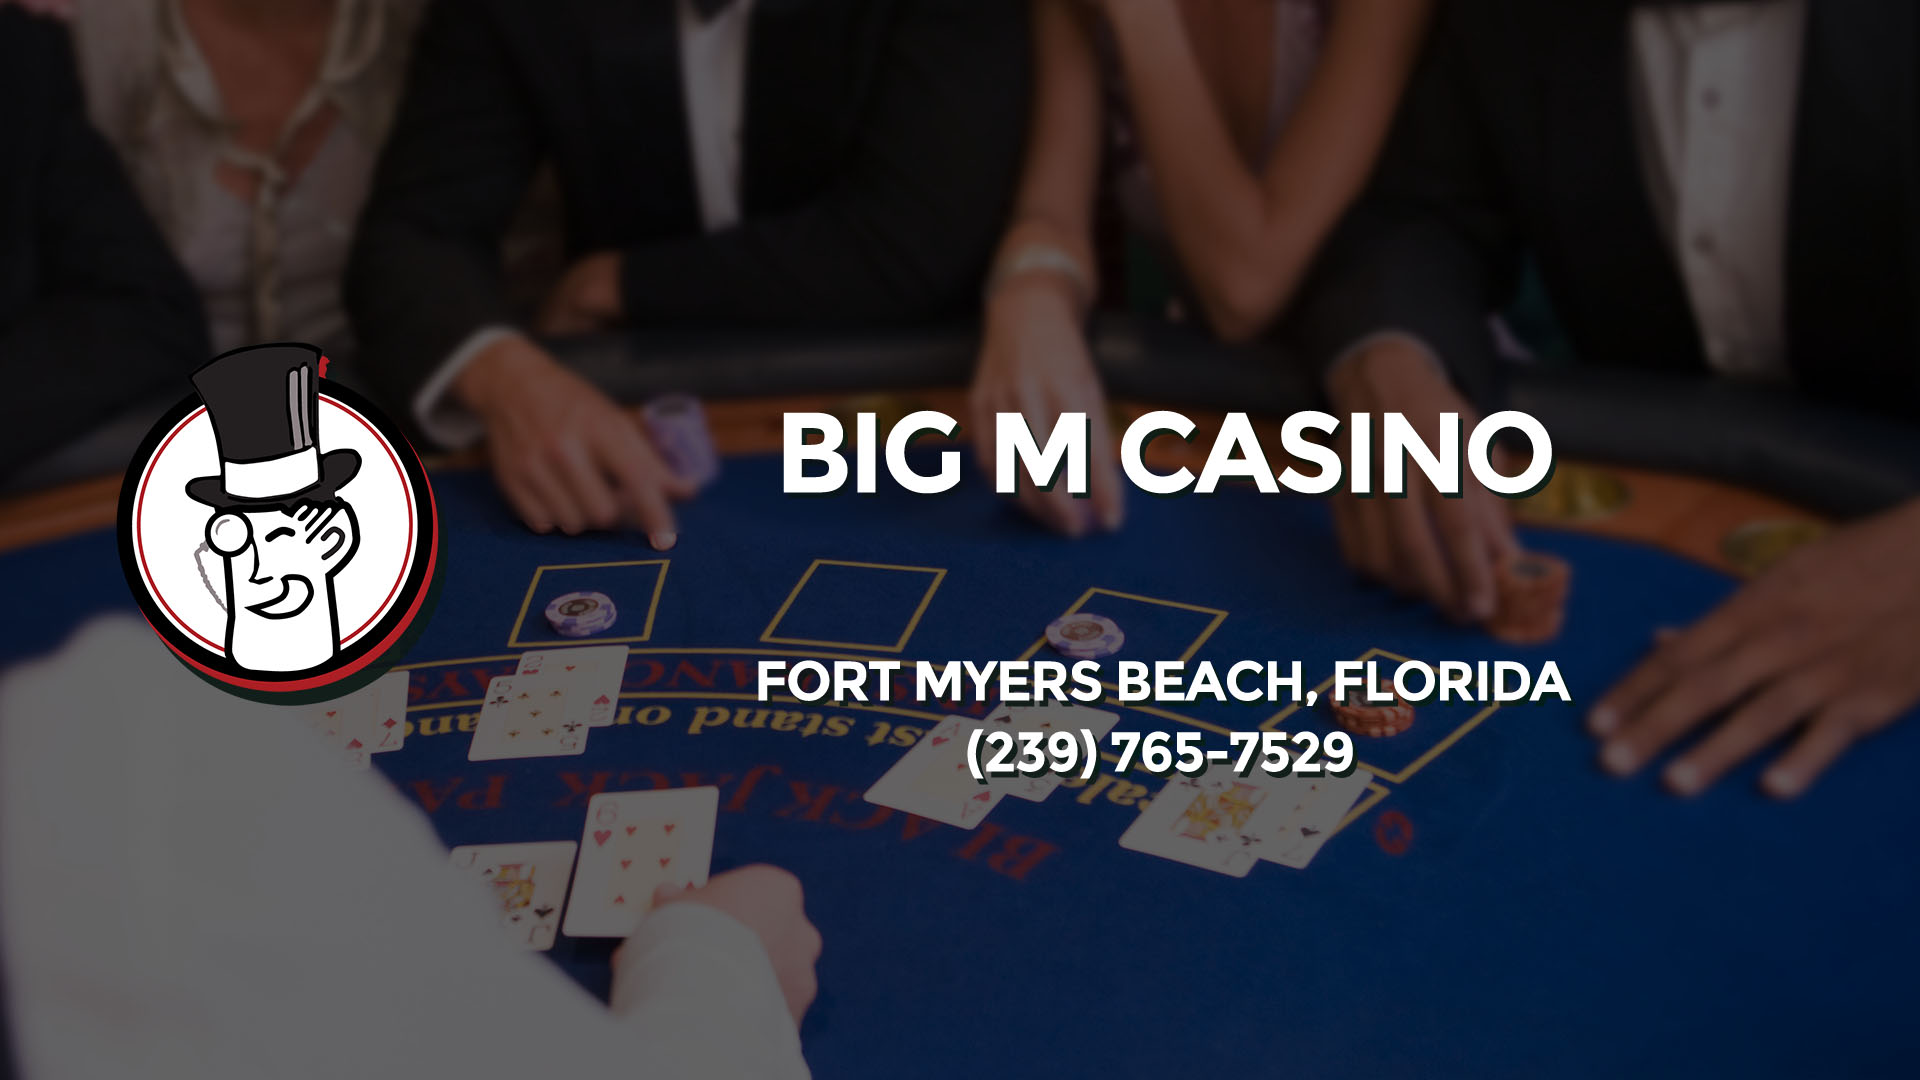 BIG M CASINO FORT MYERS BEACH FL